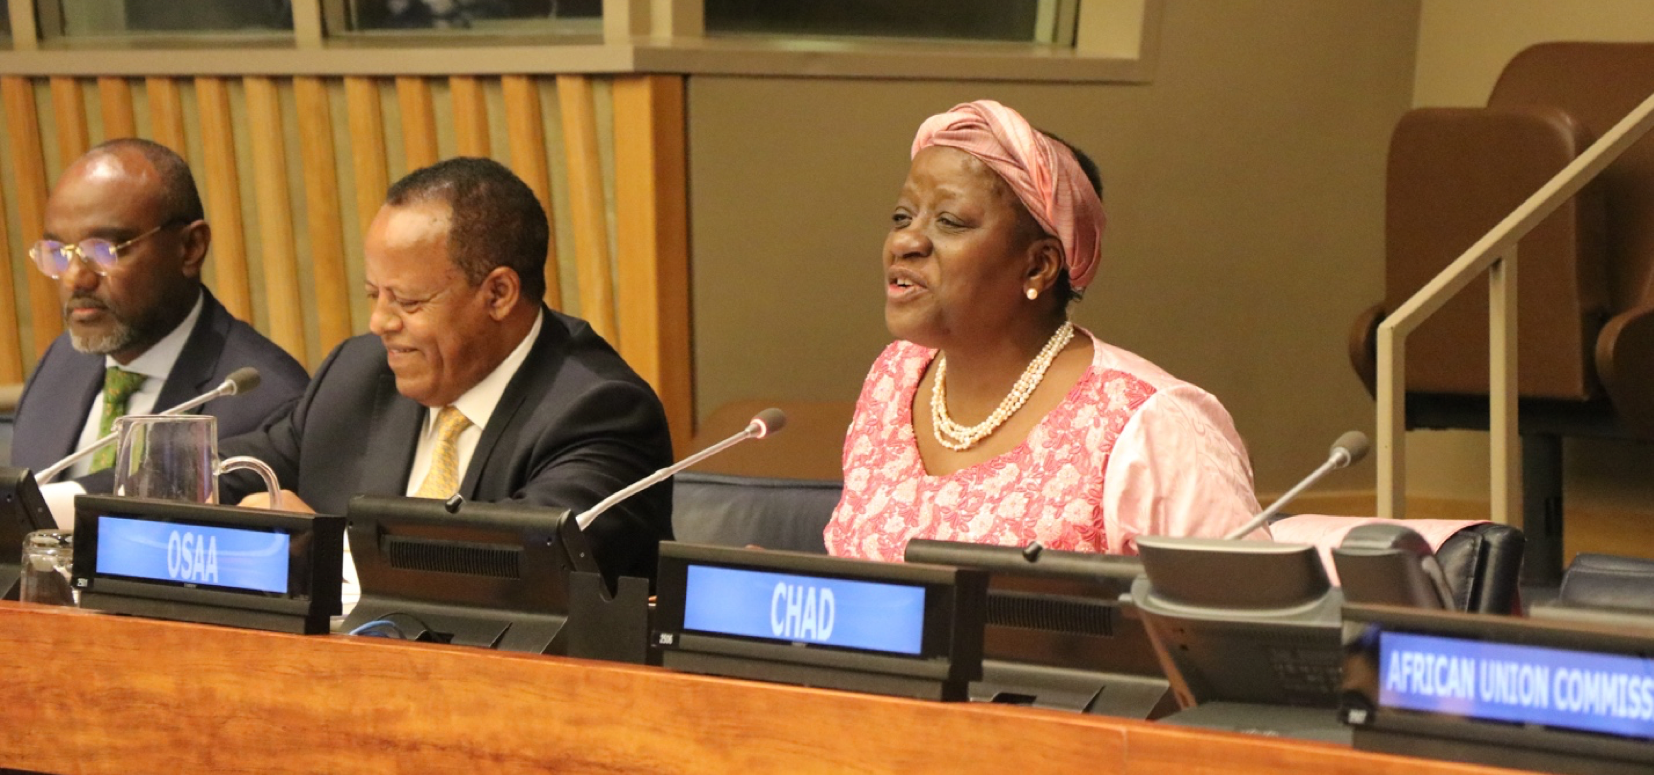 Under-Secretary-General's and Special Adviser on Africa, Bience Gawanas (right).